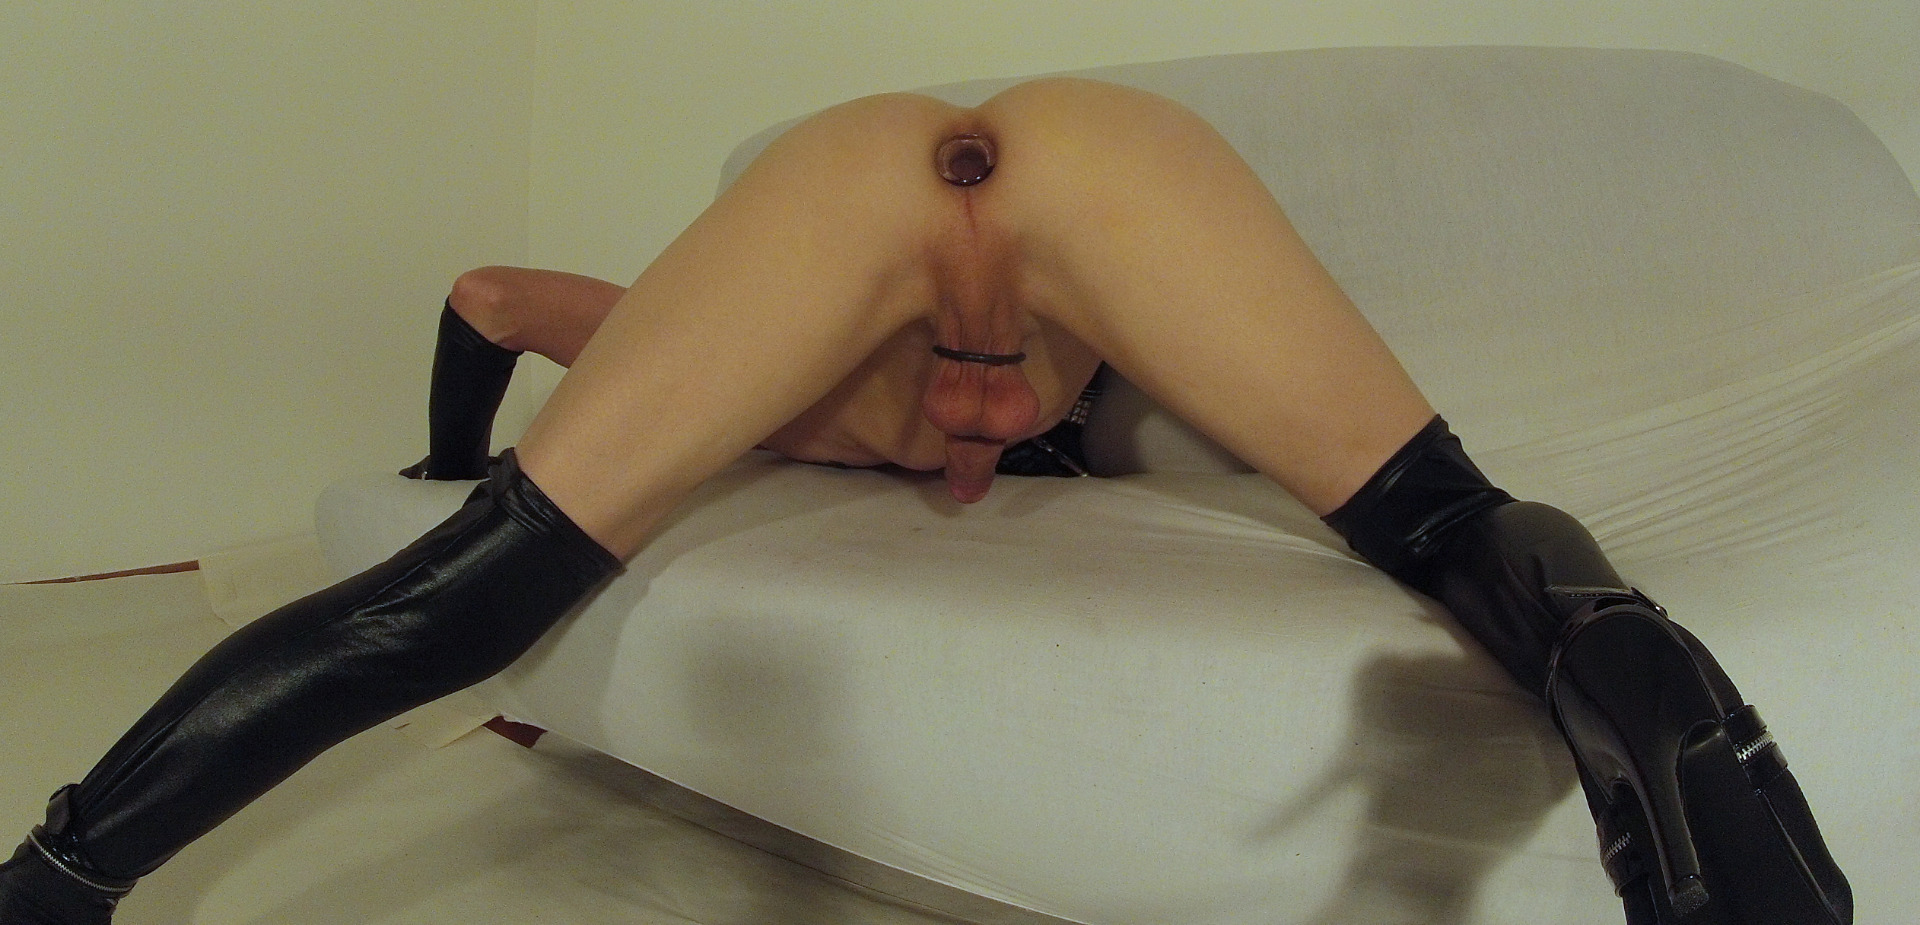 Future porn star Candy Sweet is losing her virginity photo 3